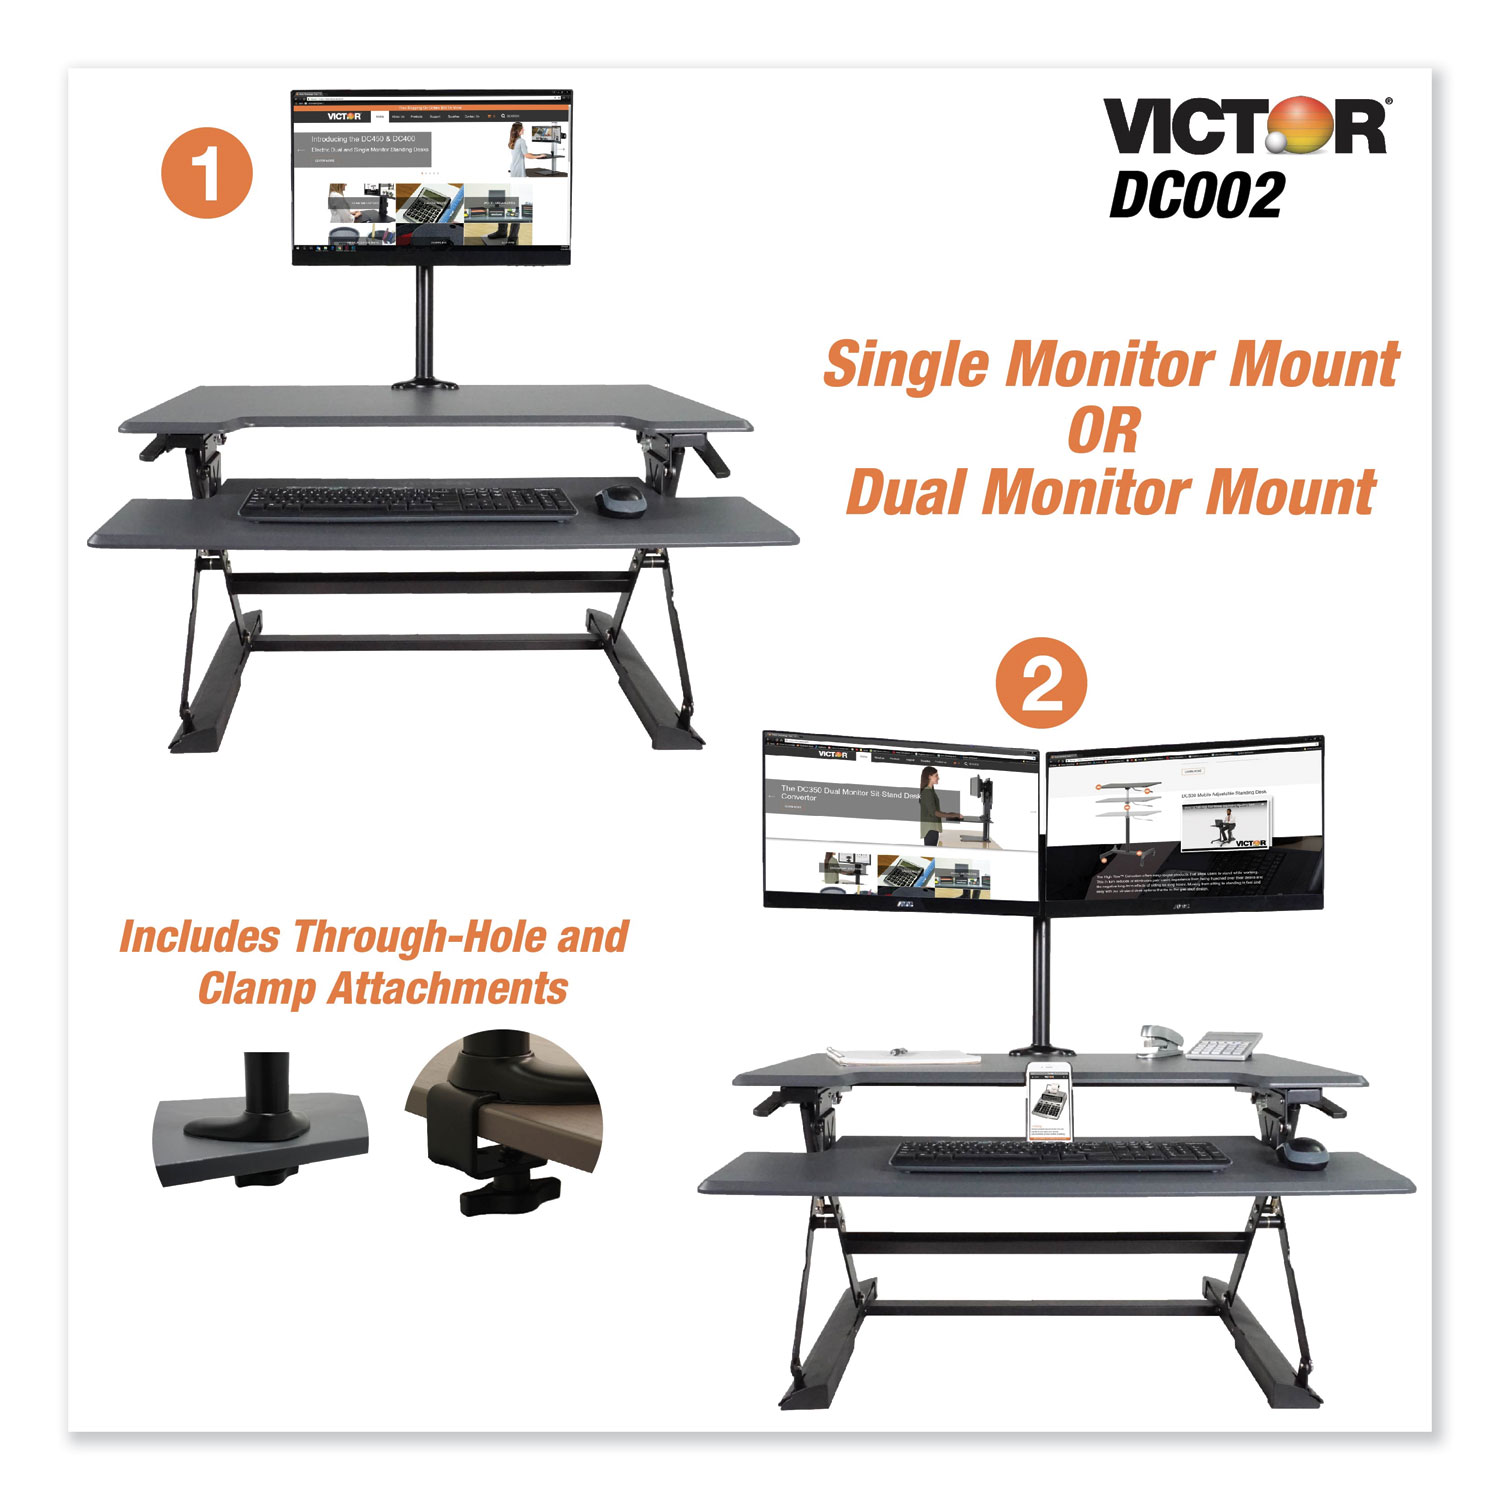 Monitor Mount With Single And Dual Arm Components, 27 1/2 X 3 X 16 1/2, Black